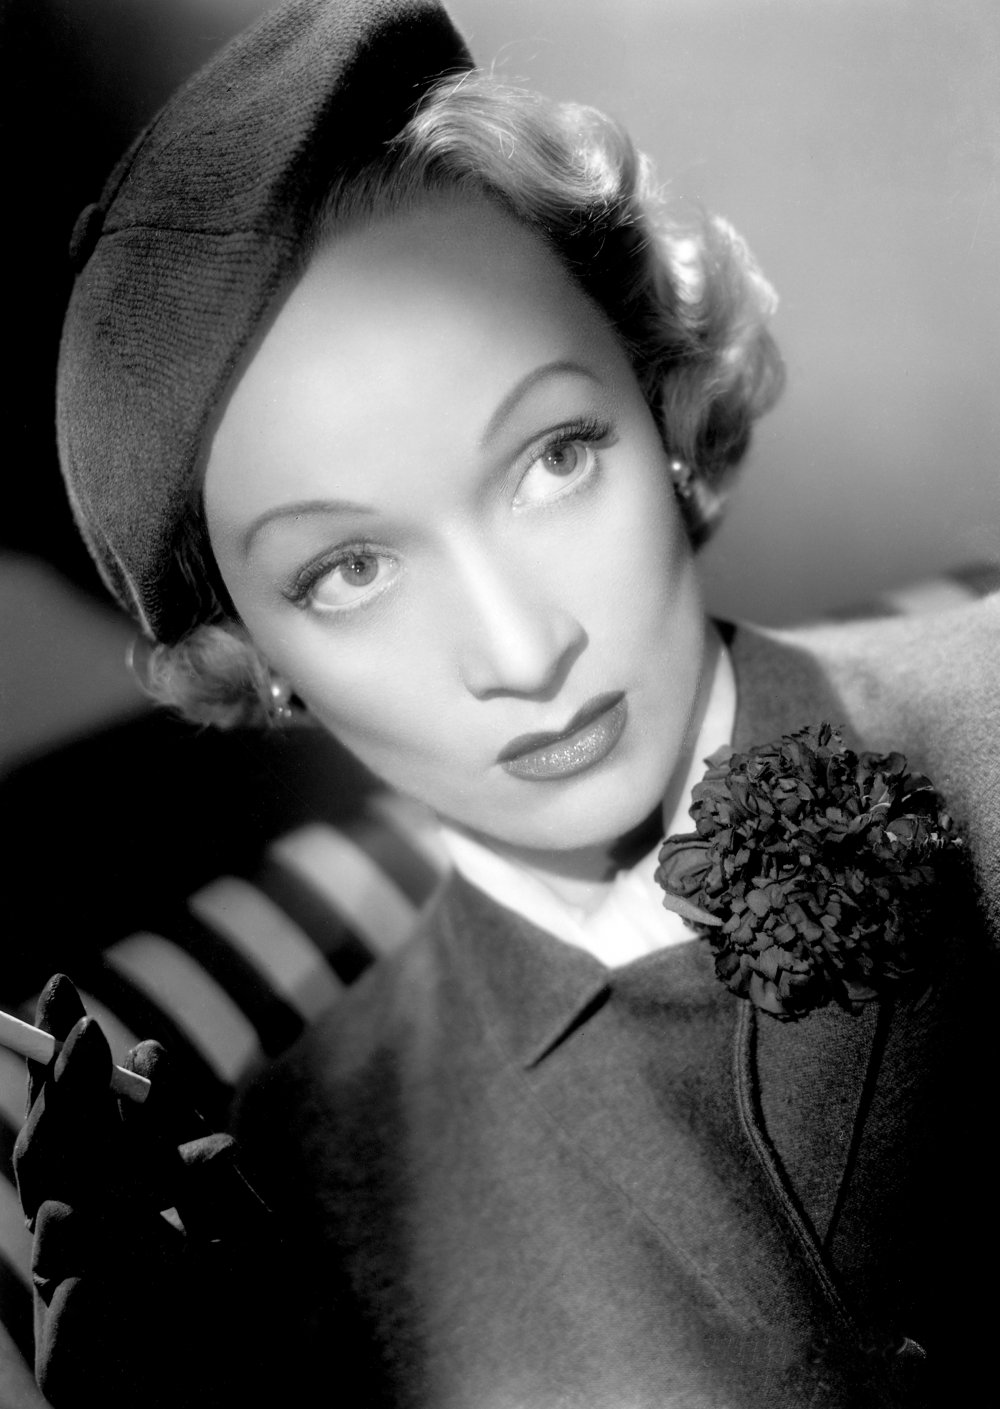 Marlene Dietrich in No Highway (1951)